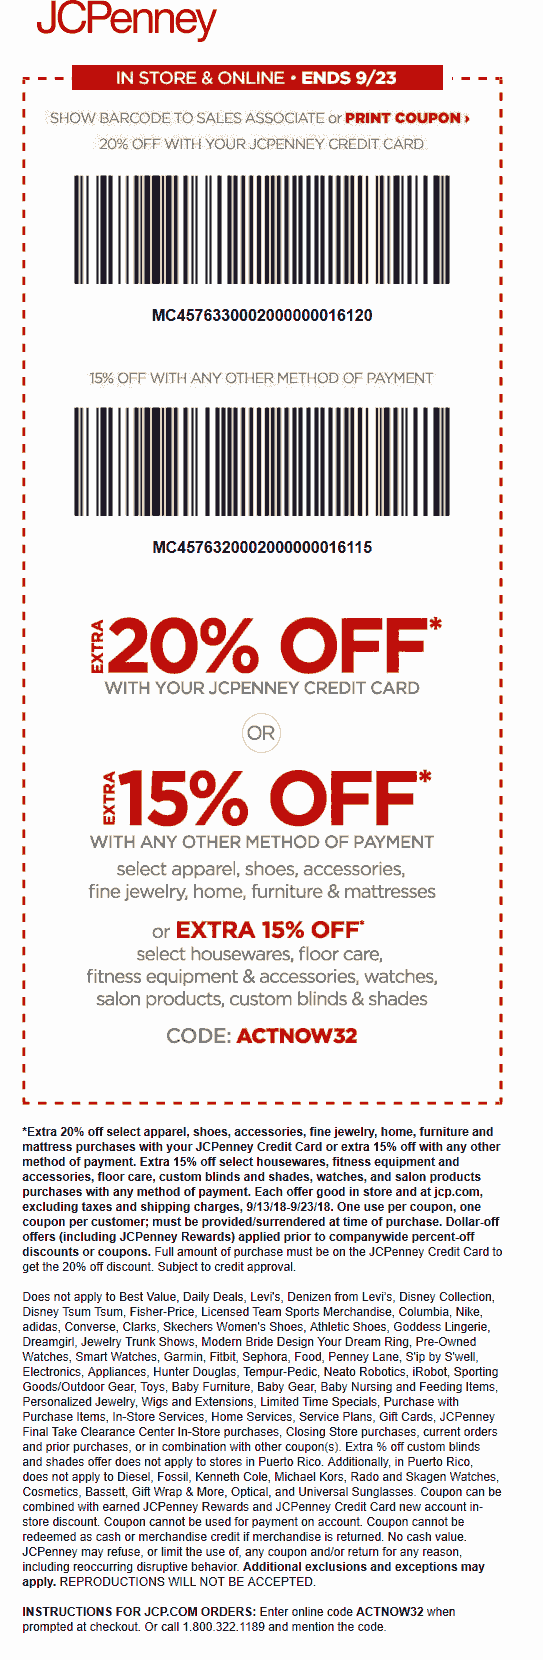 JCPenney Coupon July 2019 15% off at JCPenney, or online via promo code ACTNOW32